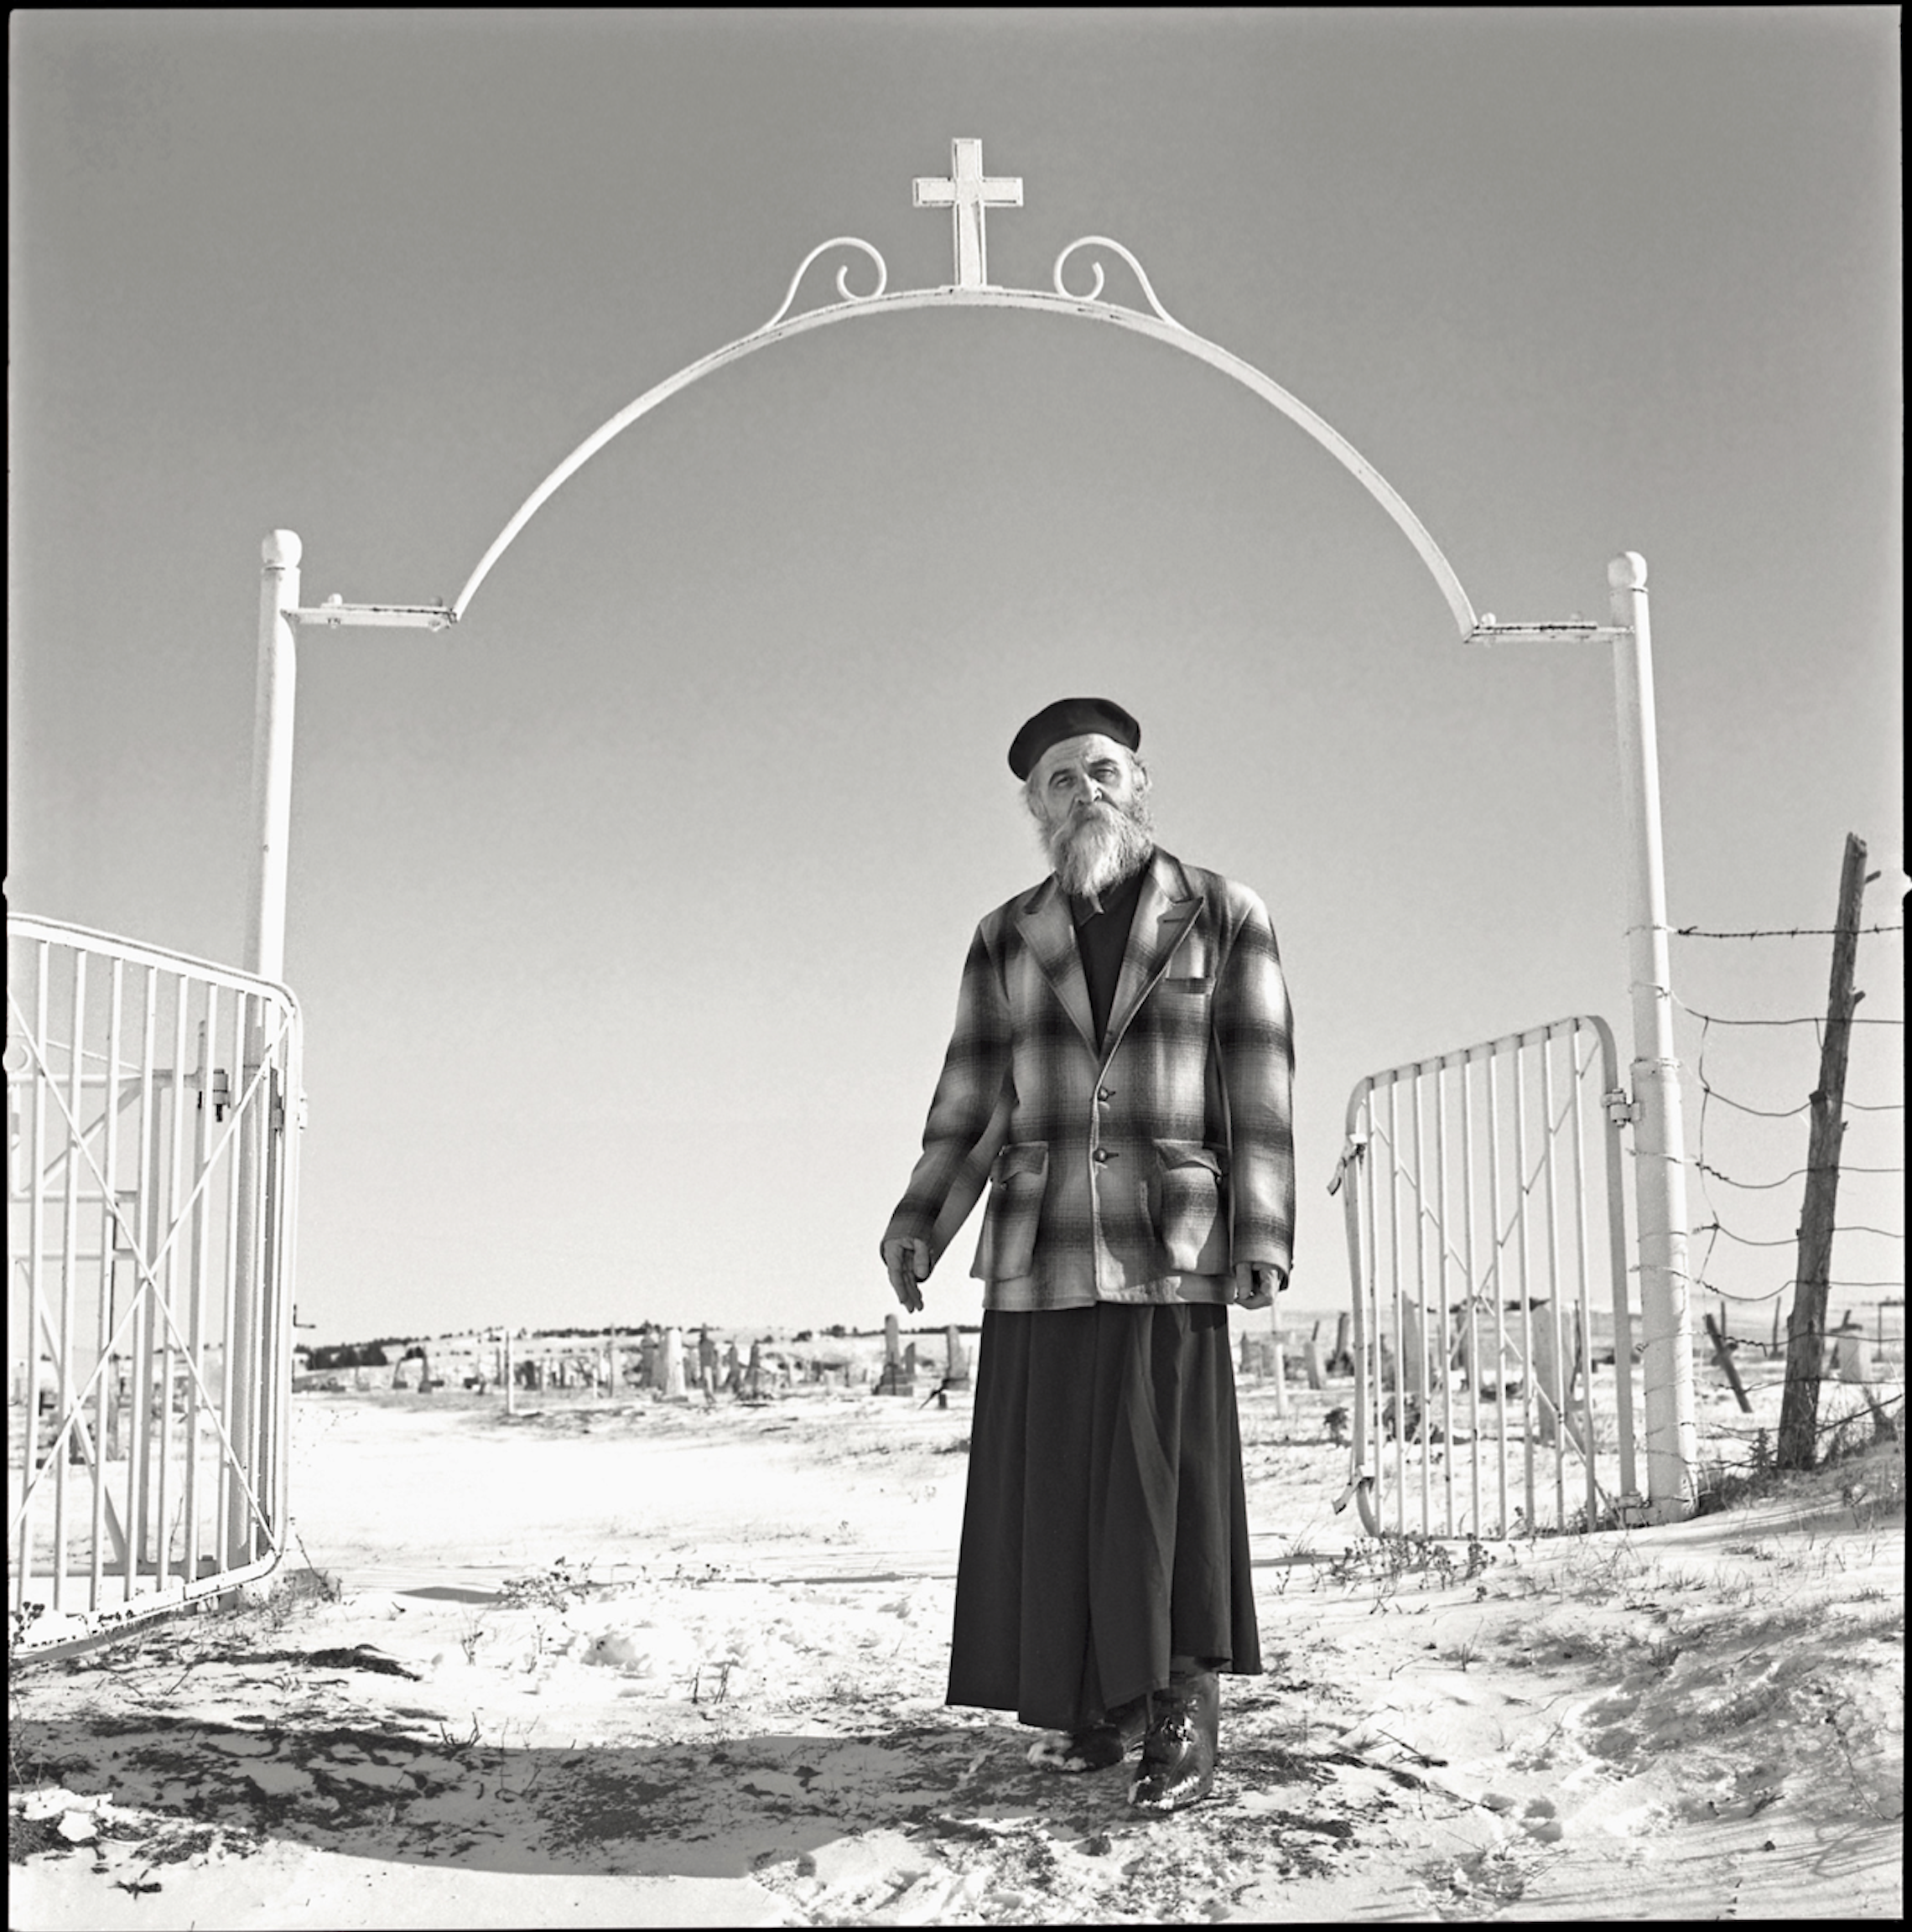 Brother Simon, The Pine Ridge Indian Reservation, South Dakota, 1996